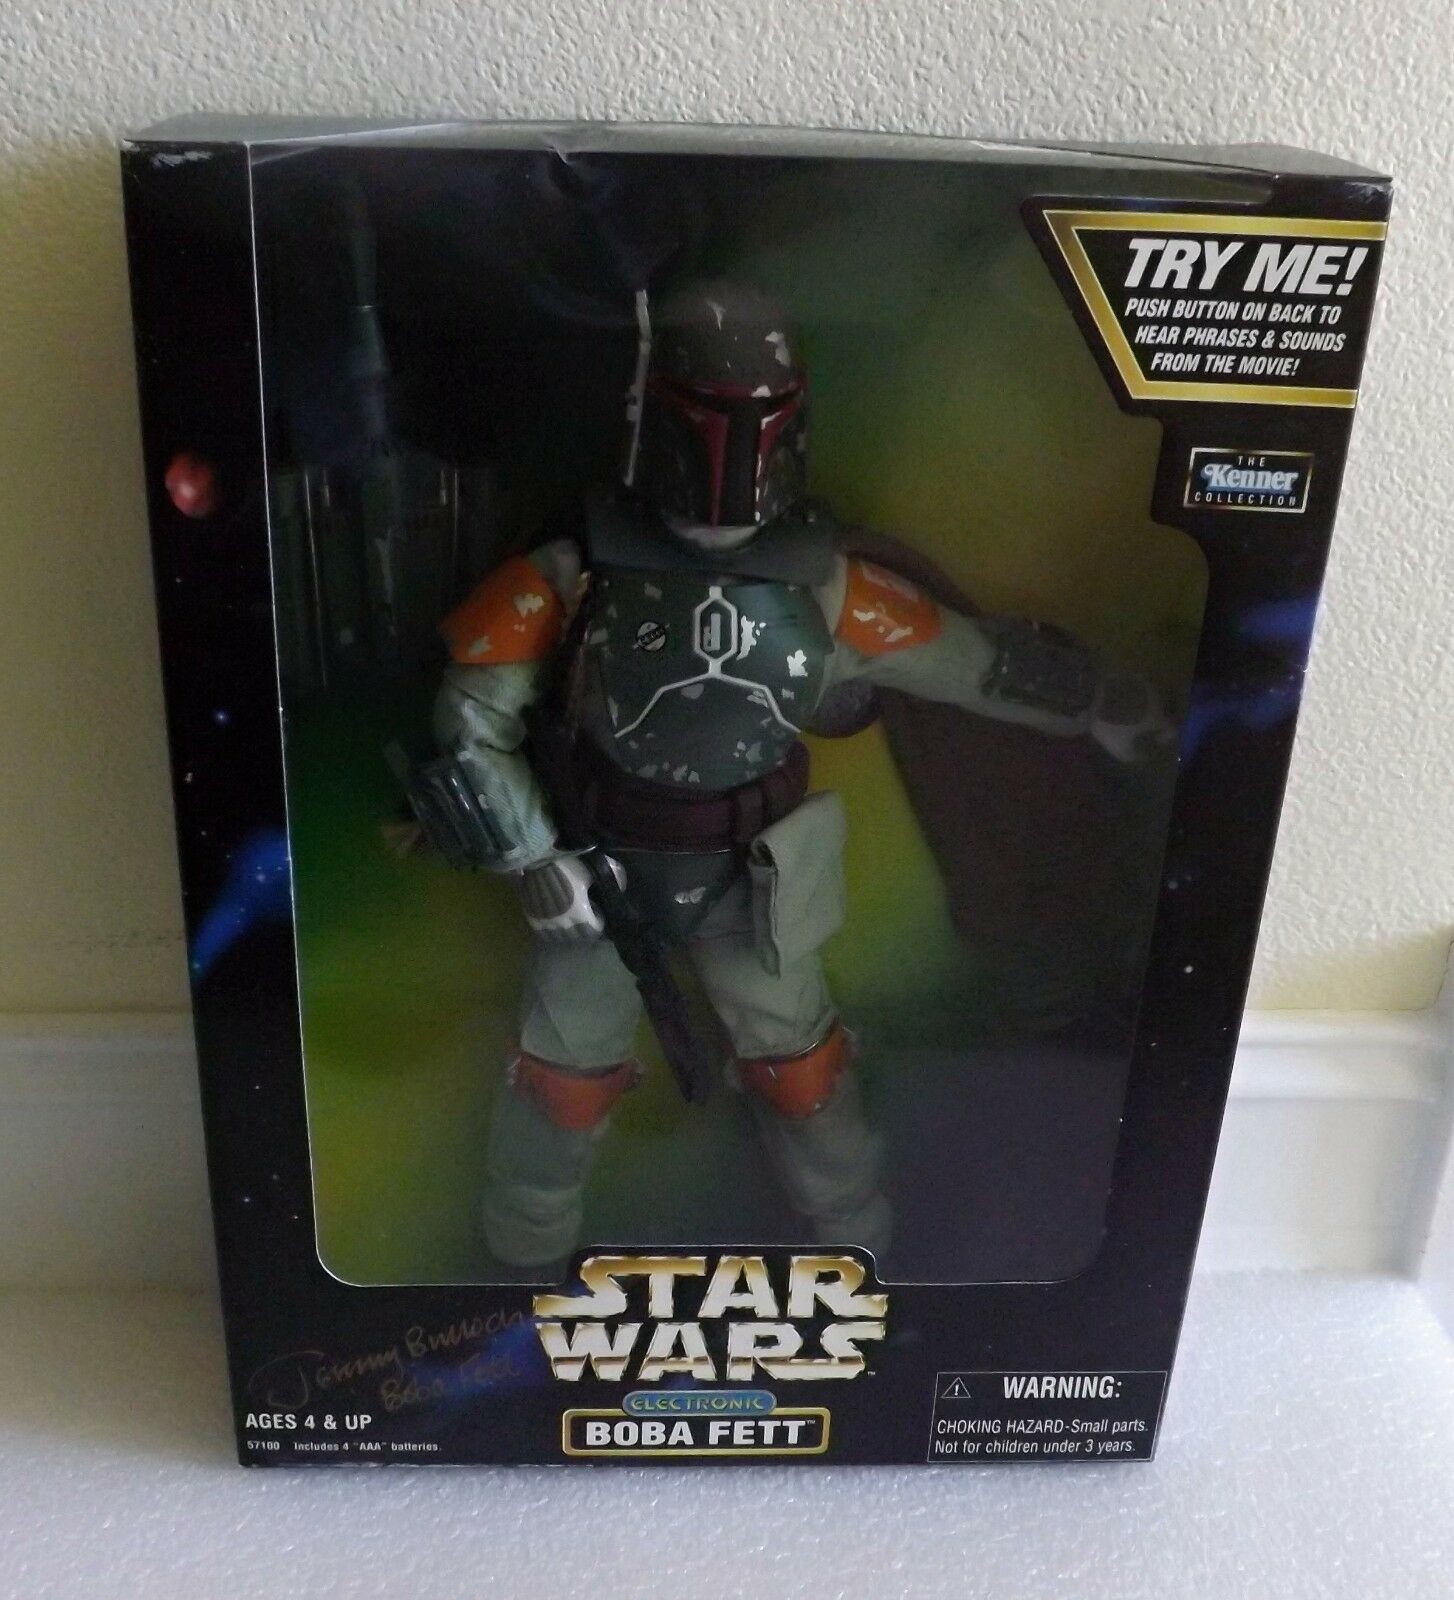 NEW 1998 KENNER ACTION COLLECTION ELECTRONIC BOBA FETT JEREMY BULLOCH AUTOGRAPH